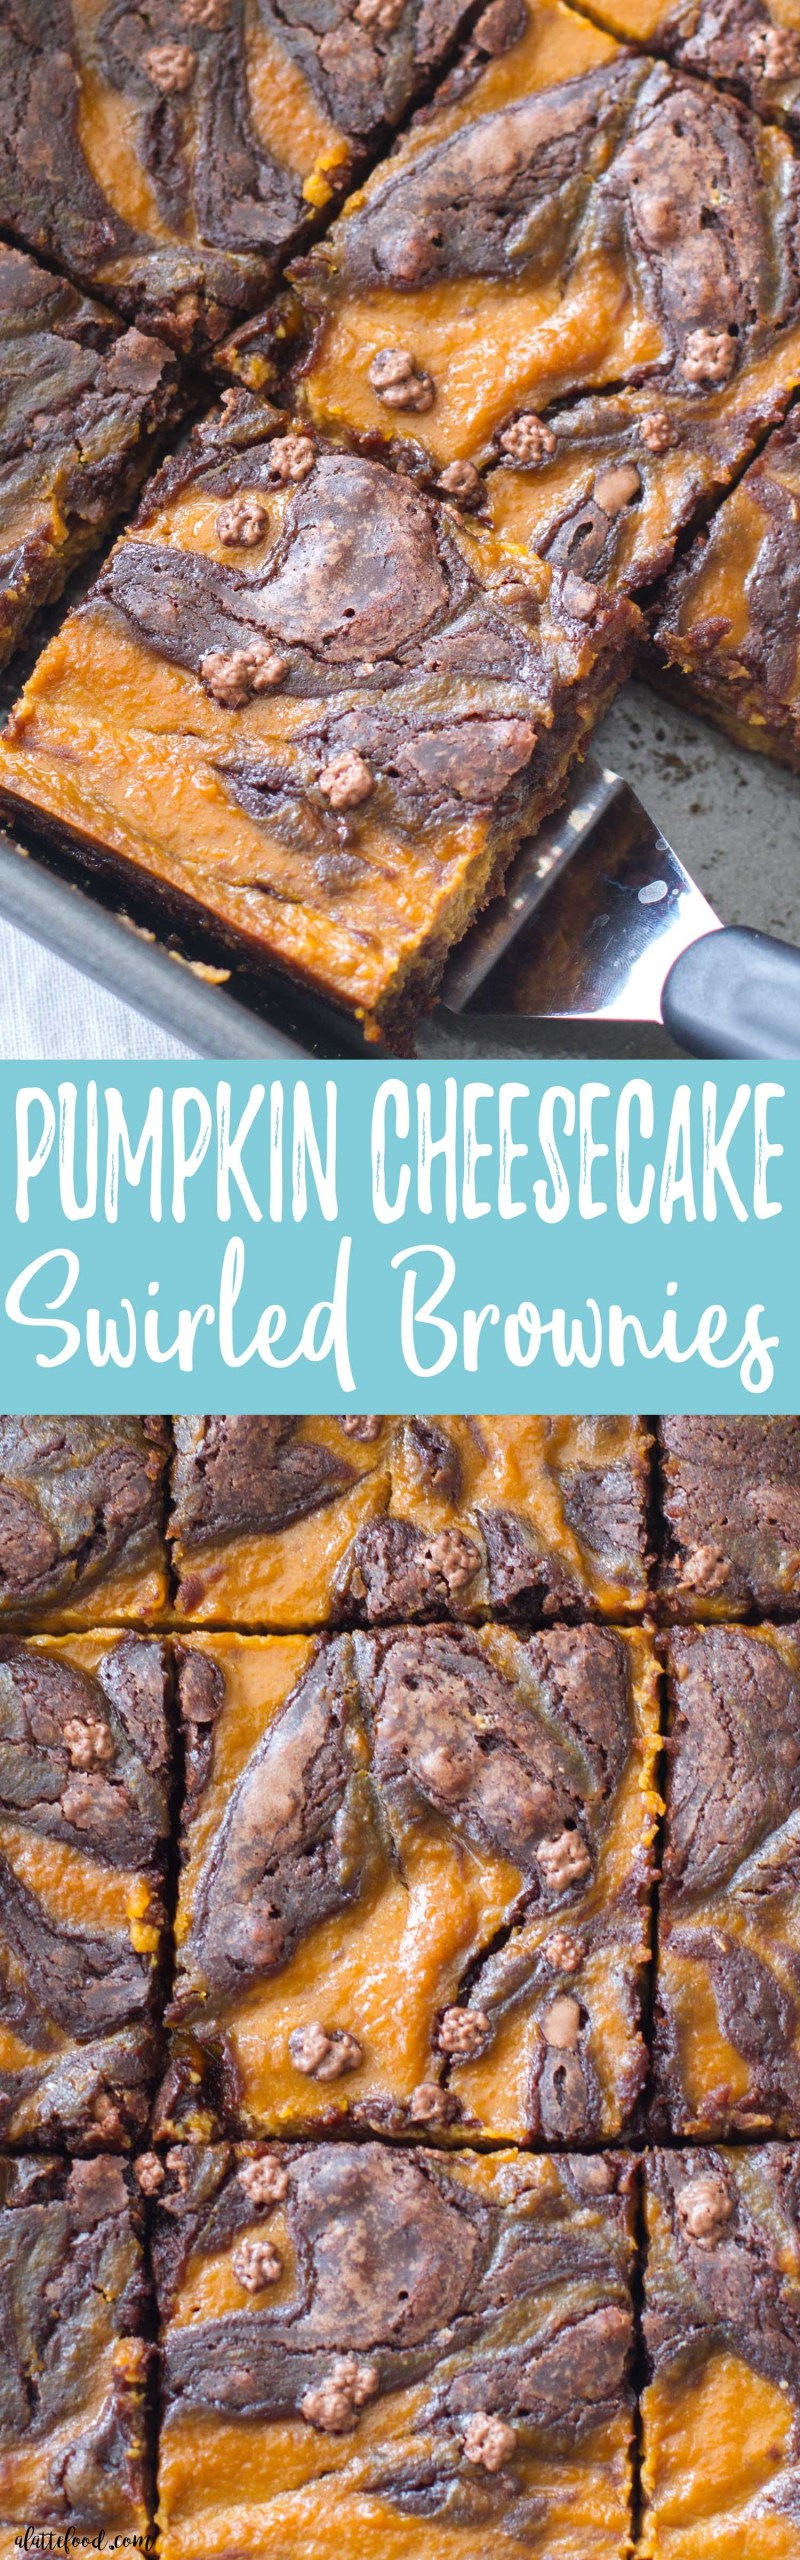 This easy pumpkin cheesecake brownie recipe isperfect for the fall season! Only a few ingredients stand between you and these rich, fudgy brownies!